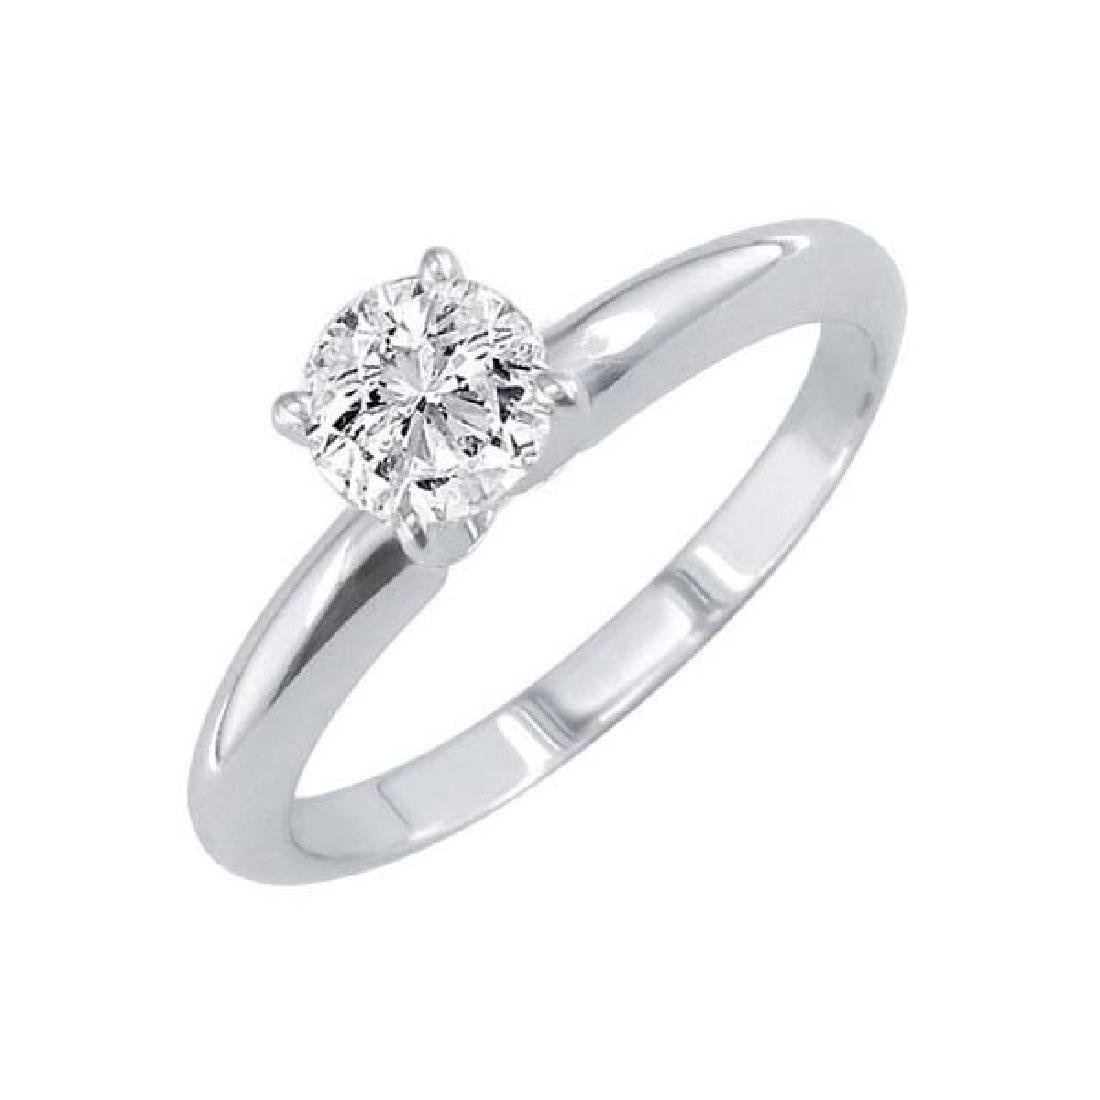 Certified 0.43 CTW Round Diamond Solitaire 14k Ring I/S